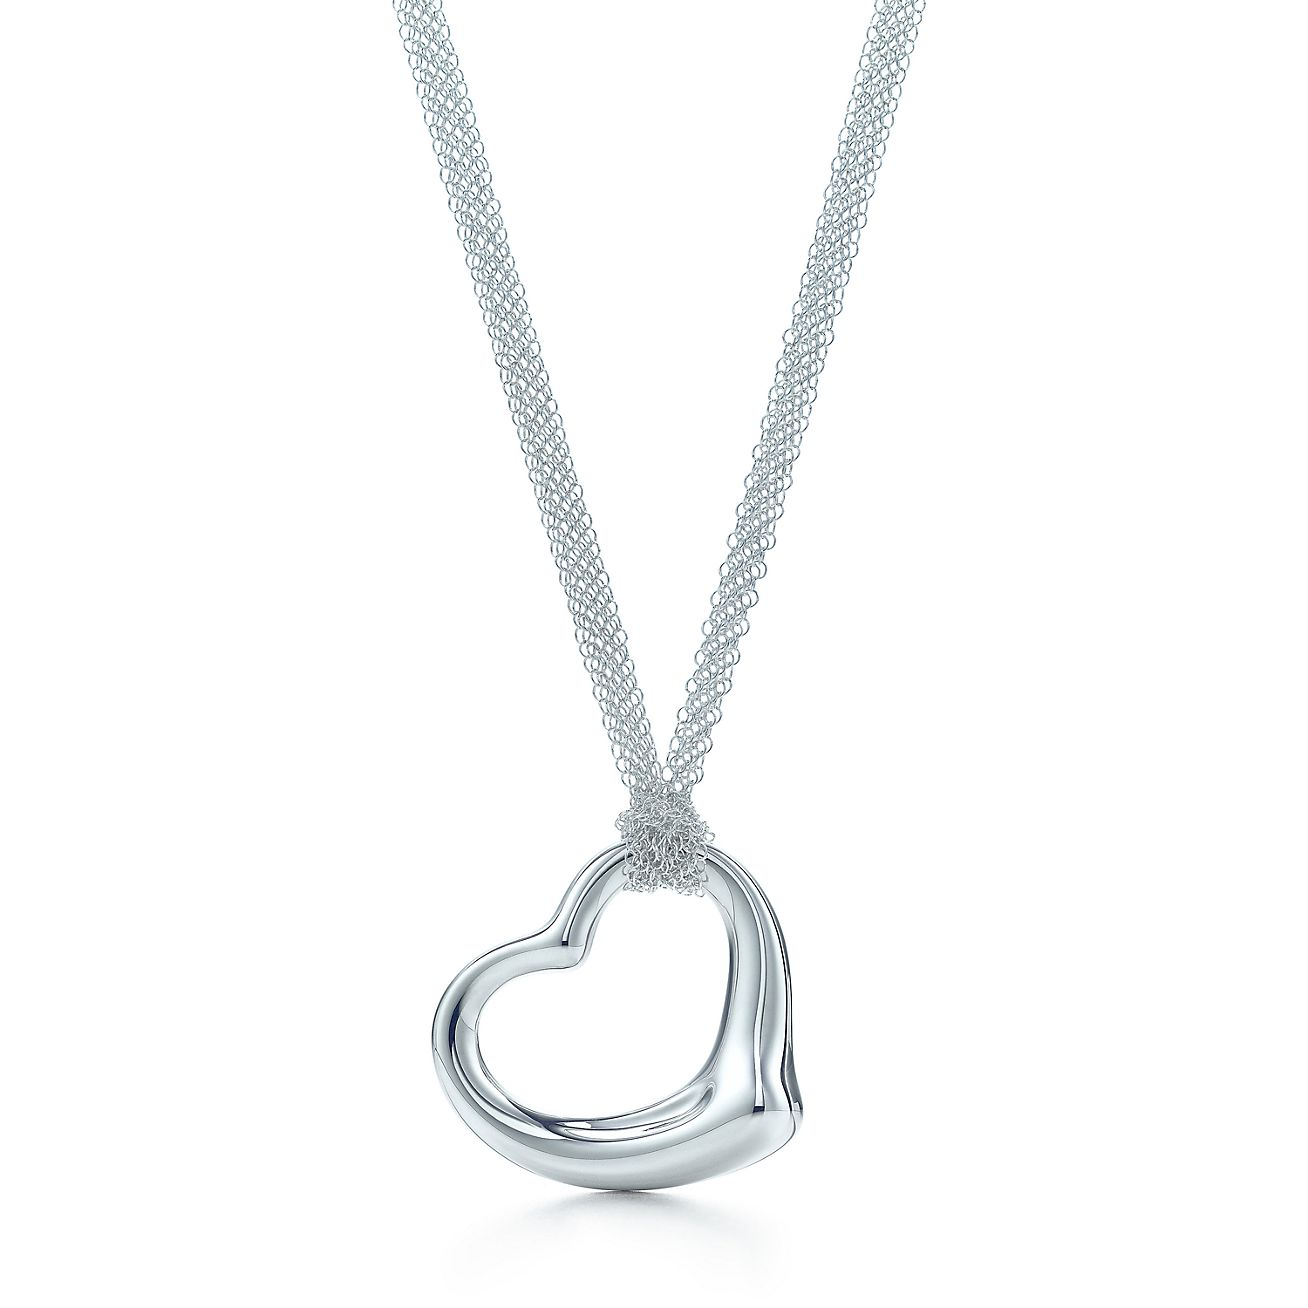 product size heart jewellery necklaces os alcazar necklace